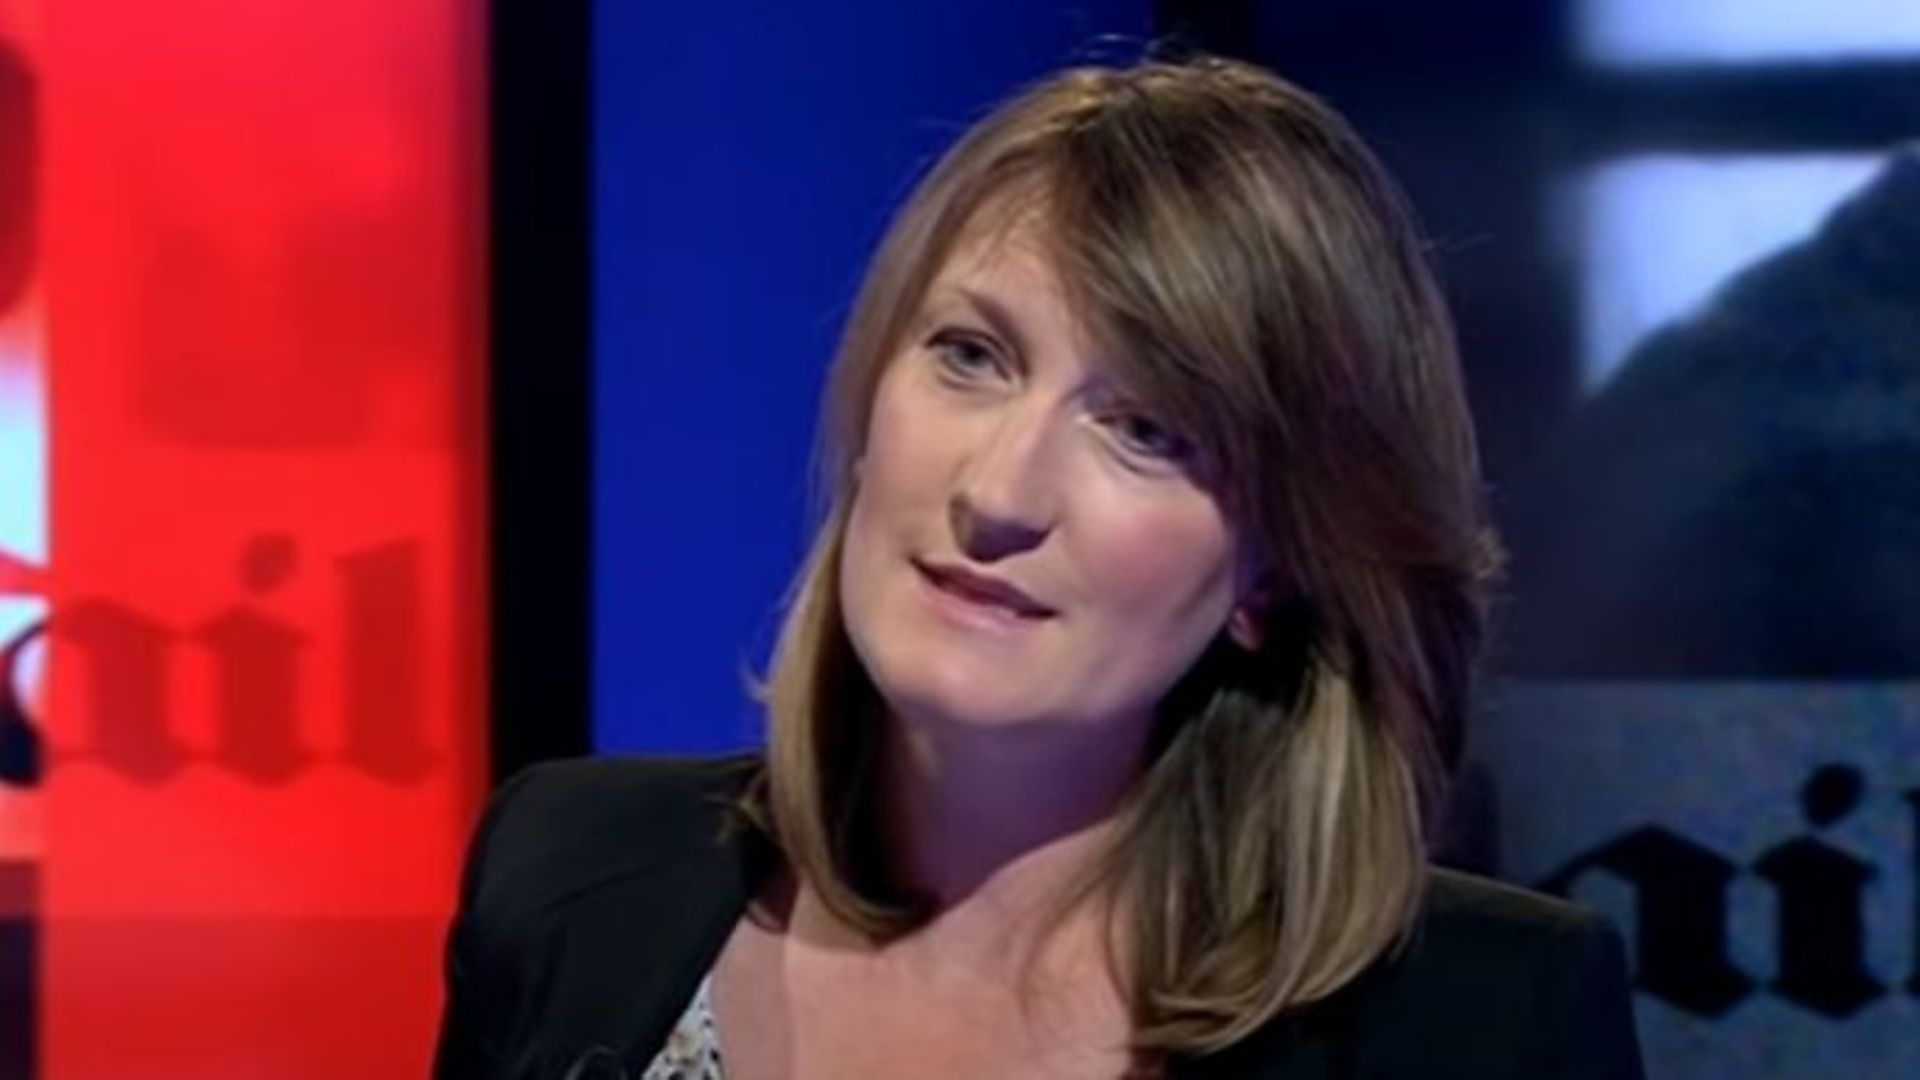 Allegra Stratton appearing on Newsnight - Credit: YouTube